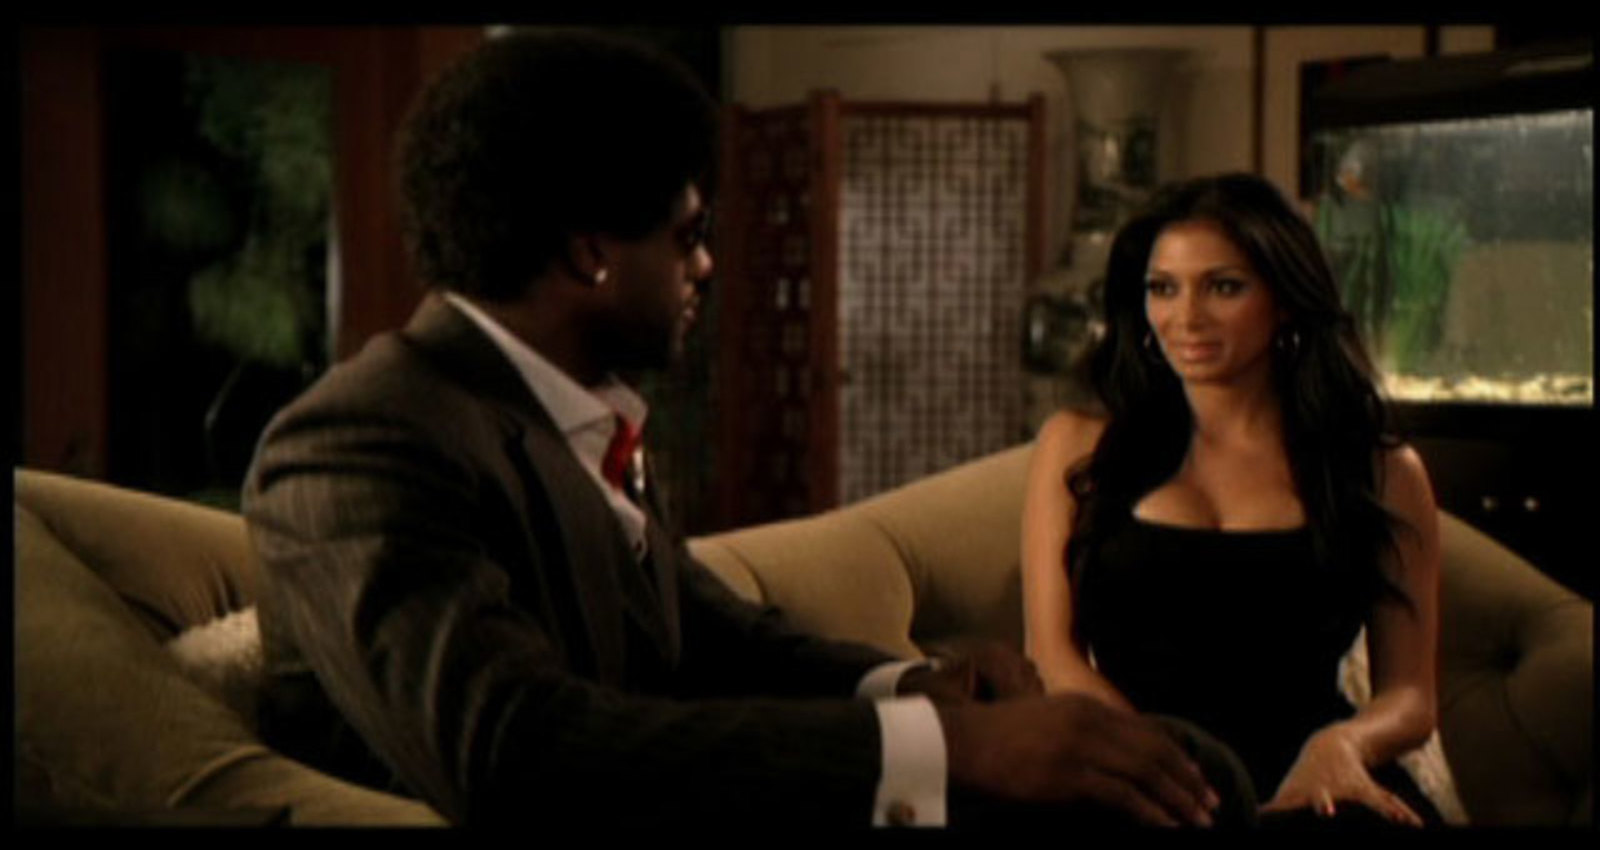 Business LeBron and Nicole Scherzinger